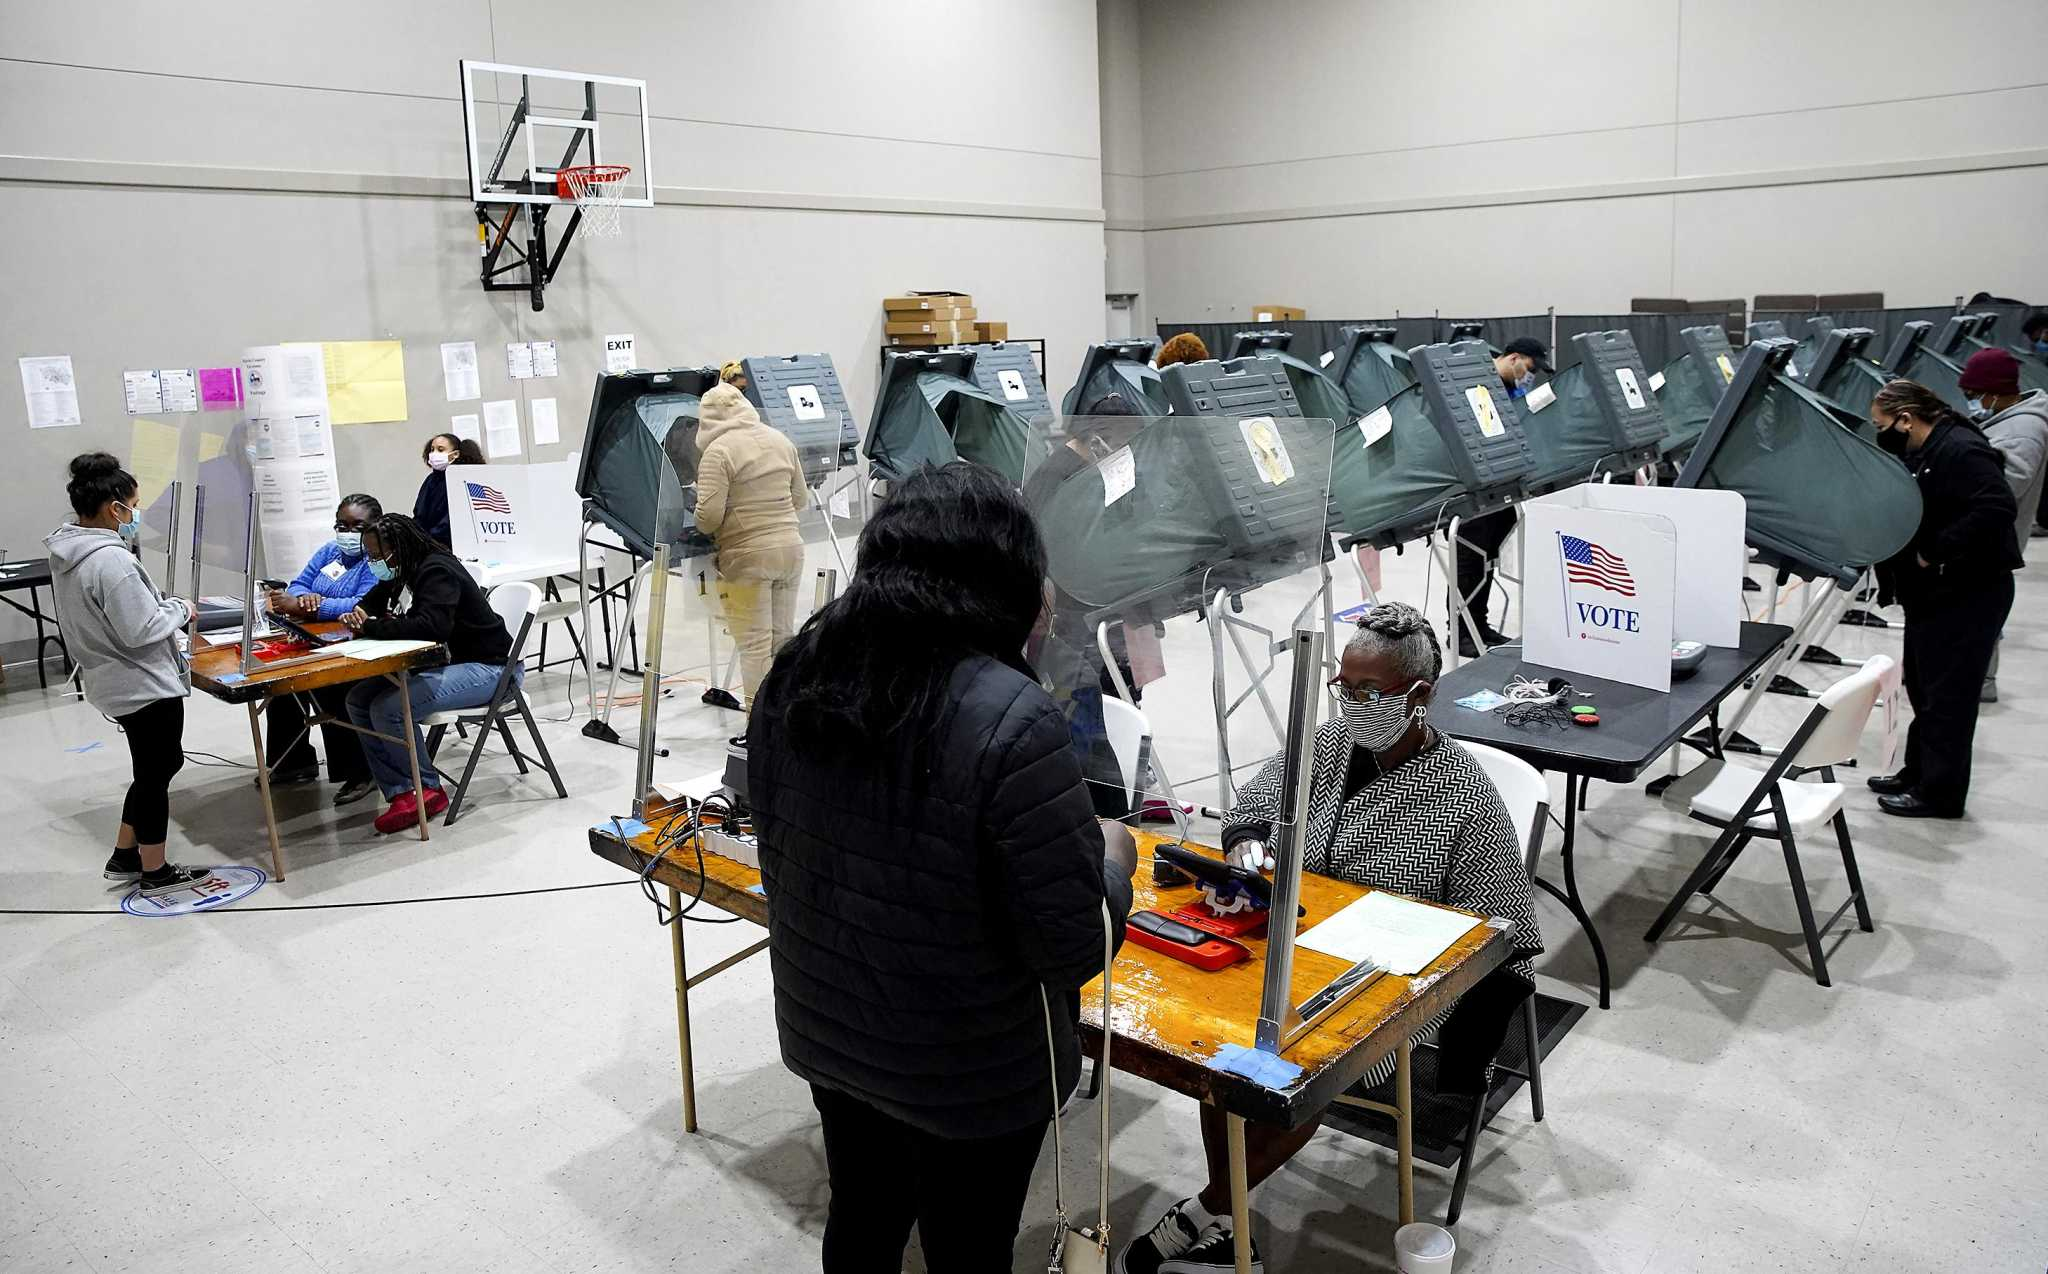 www.houstonchronicle.com: Republicans' redistricting plans give short shrift to Latino, Black and Asian voters in Texas